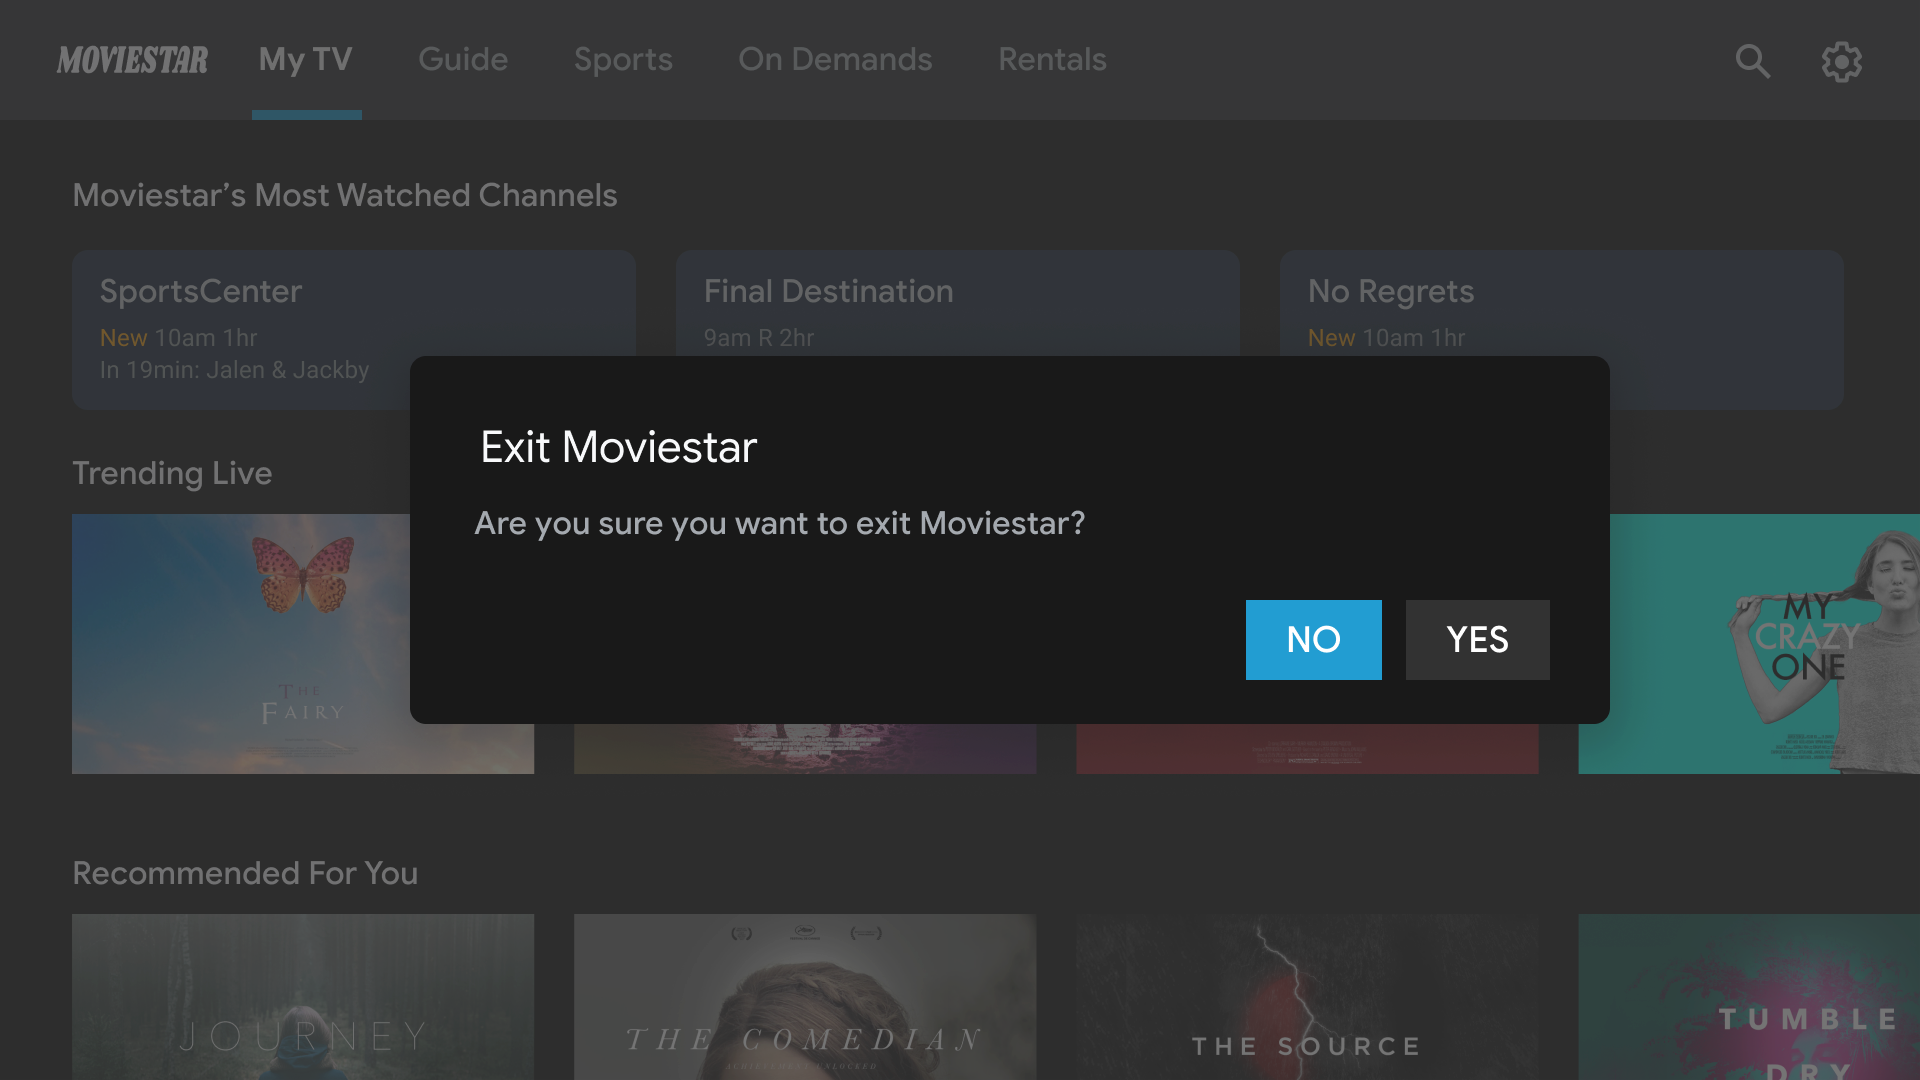 Screenshot showing a dialog asking users if they want to exit